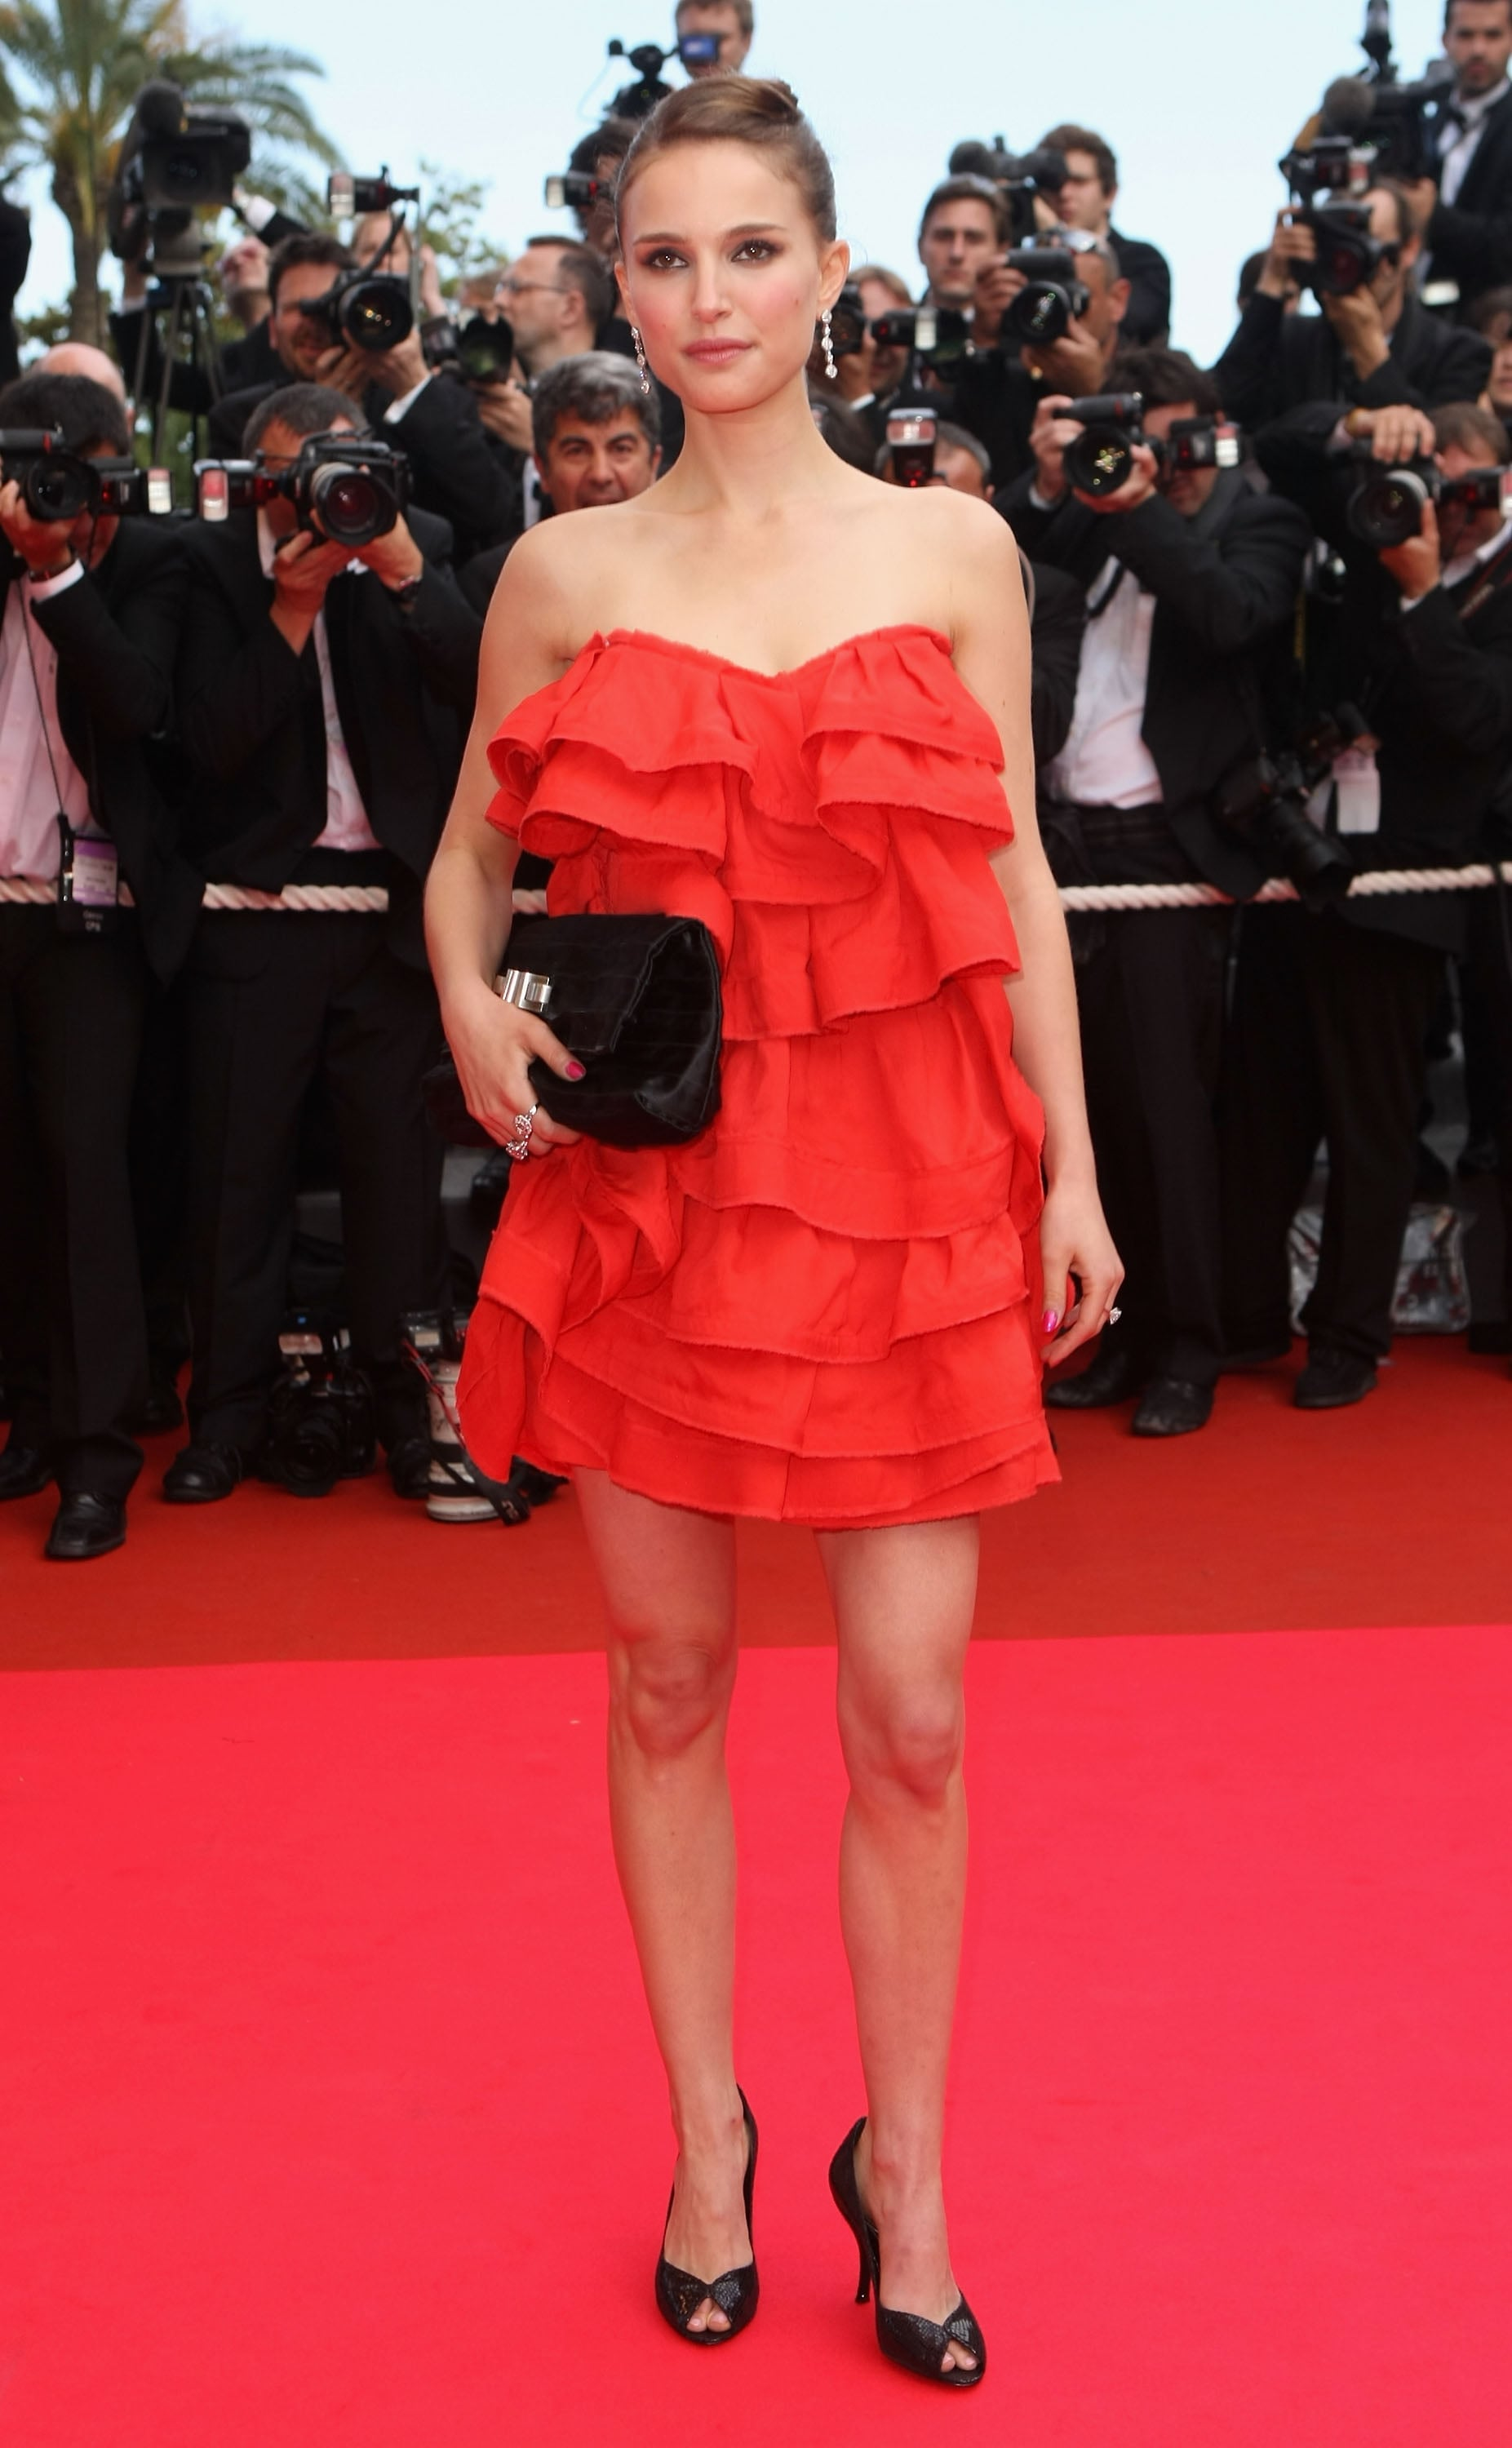 Natalie Portman matched the red carpet at the premiere of Che during the 61st Cannes Film Festival in 2008.